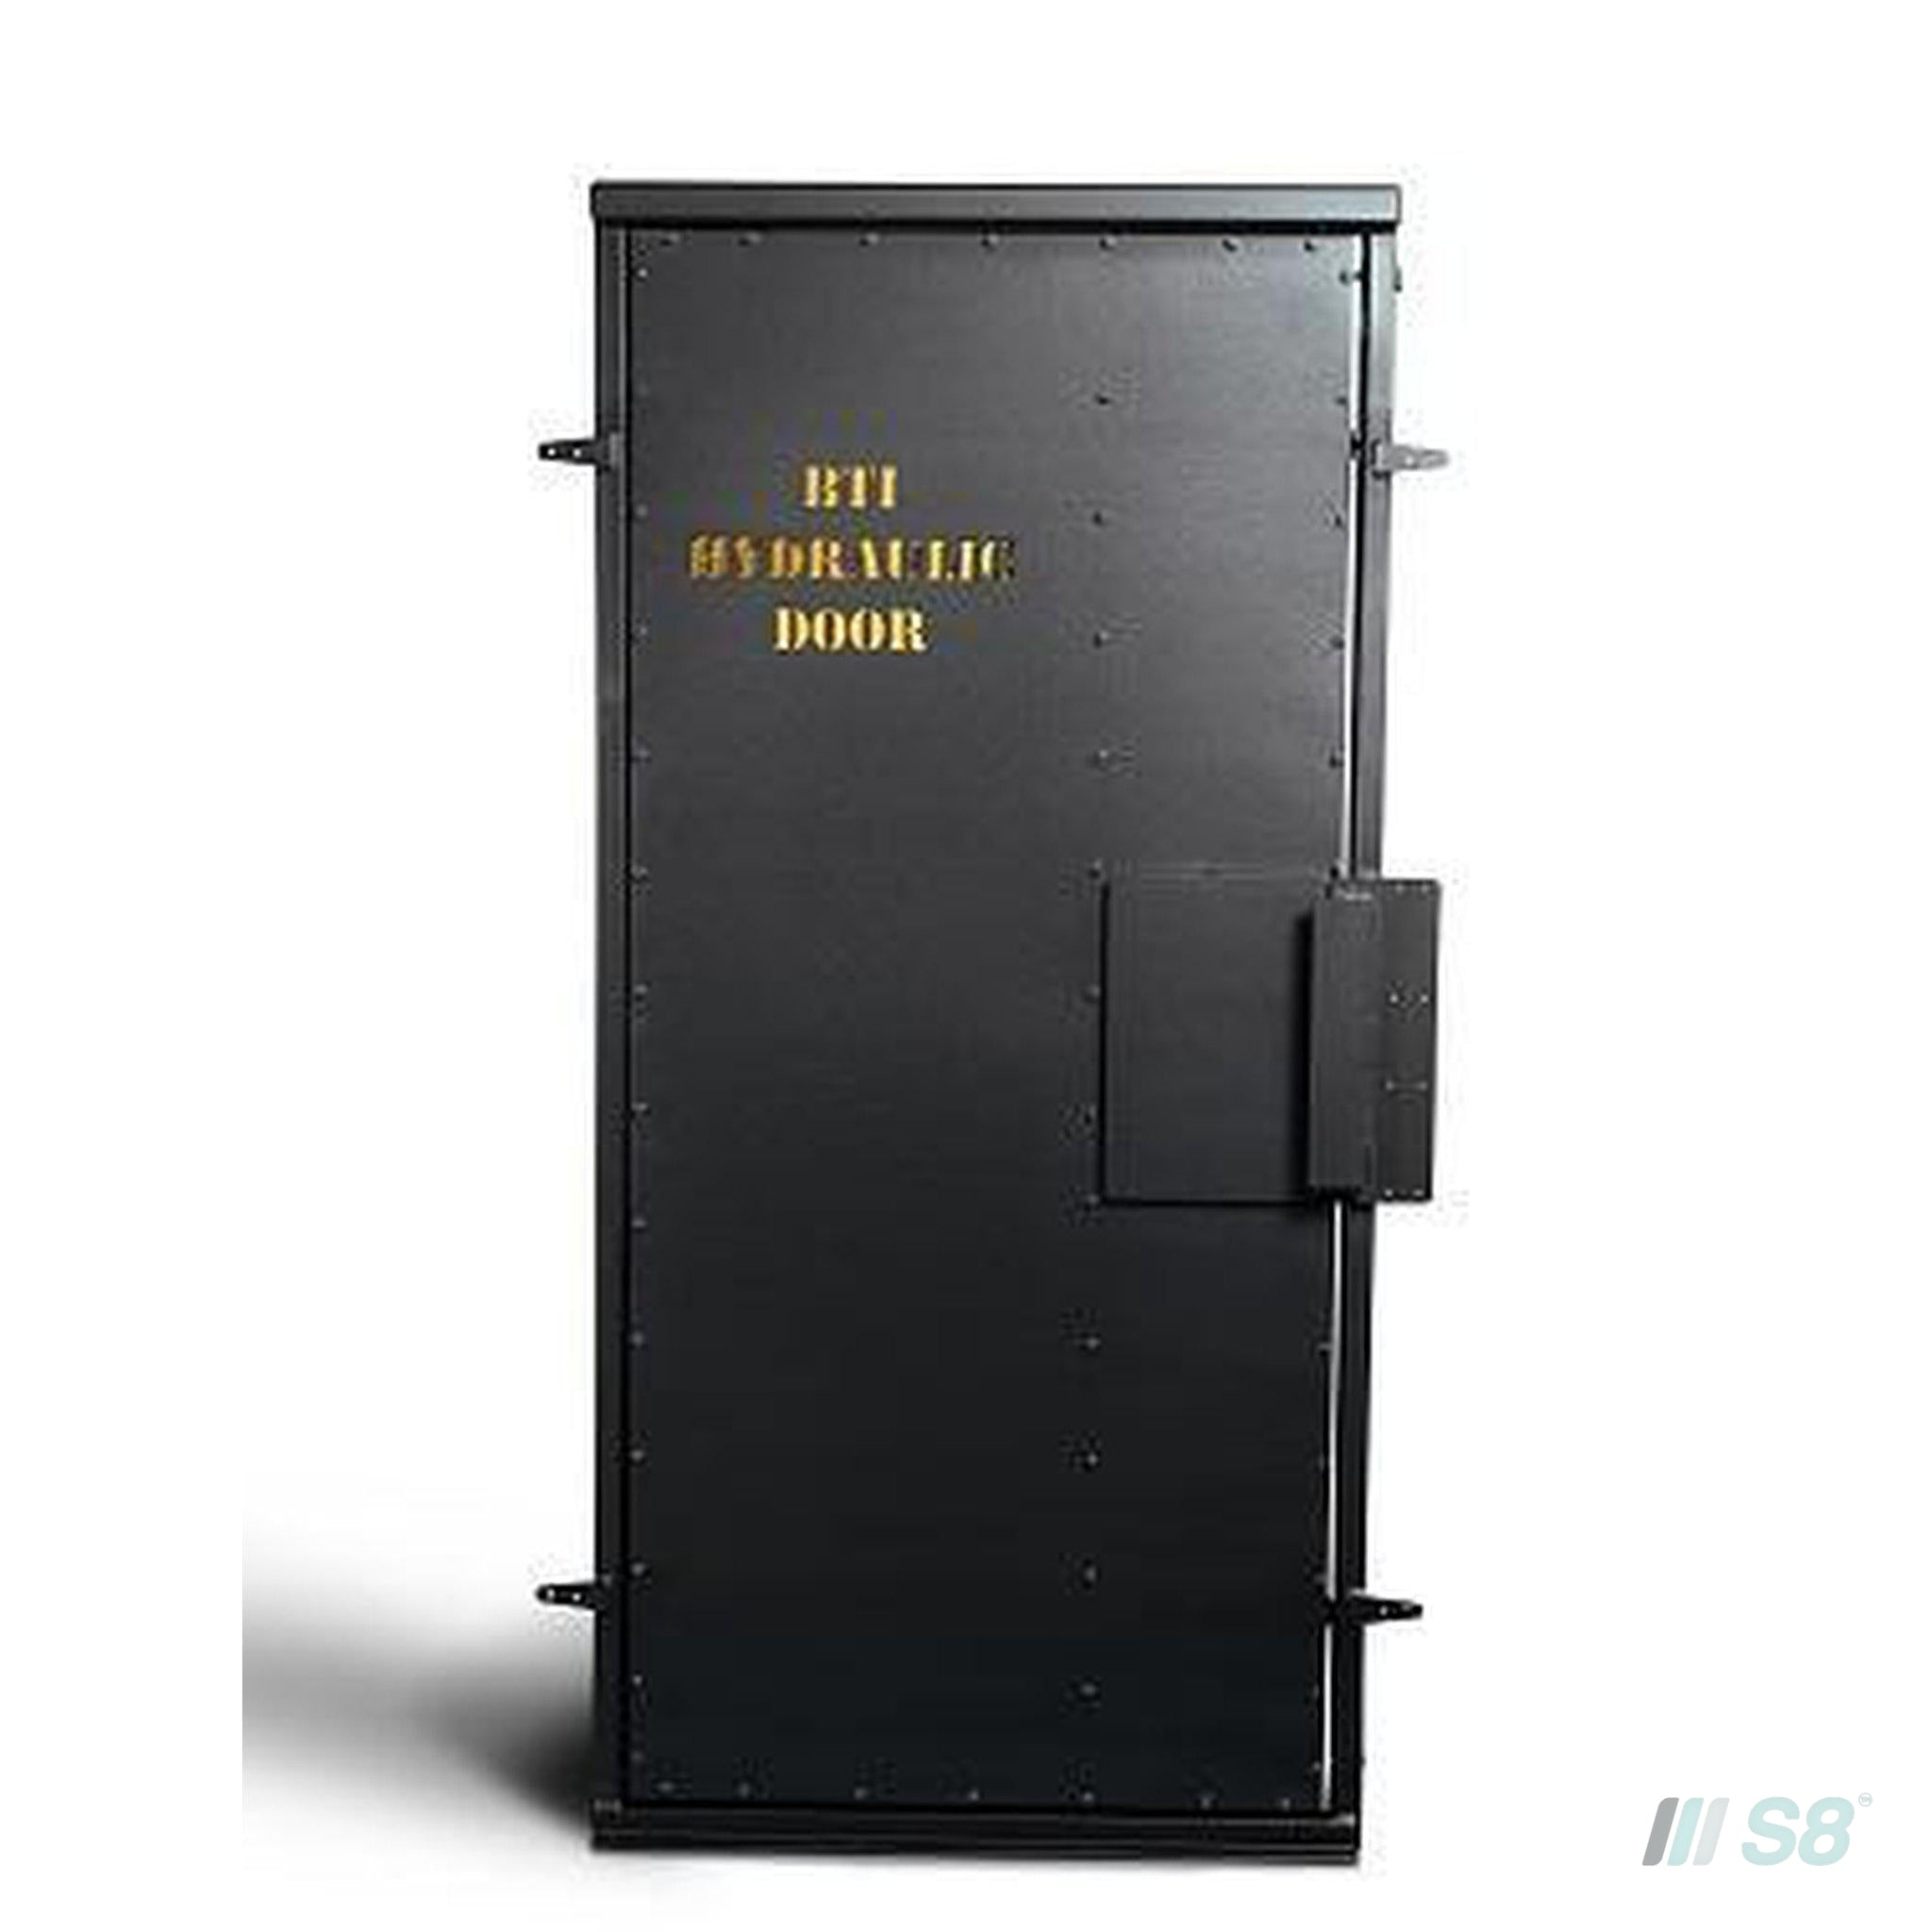 BTI Hydraulic Door-BTI-S8 Products Group